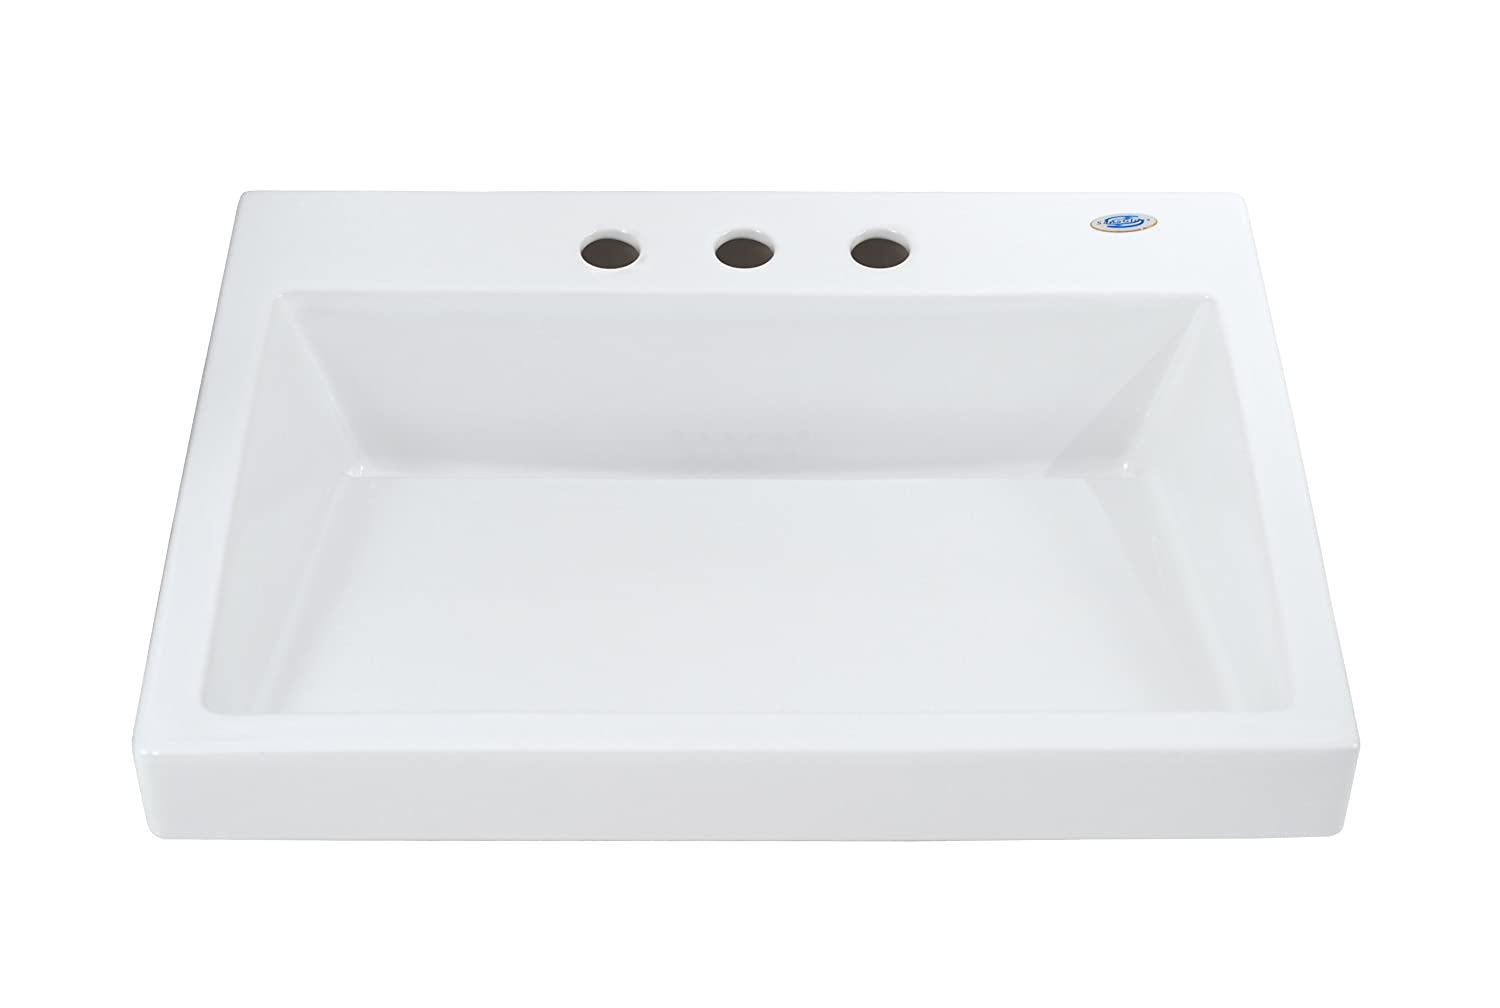 TOTO Lt171.8G#01 Kiwami Renesse Design II Vessel Lavatory With 8 Inch Centers, Cotton White well-wreapped